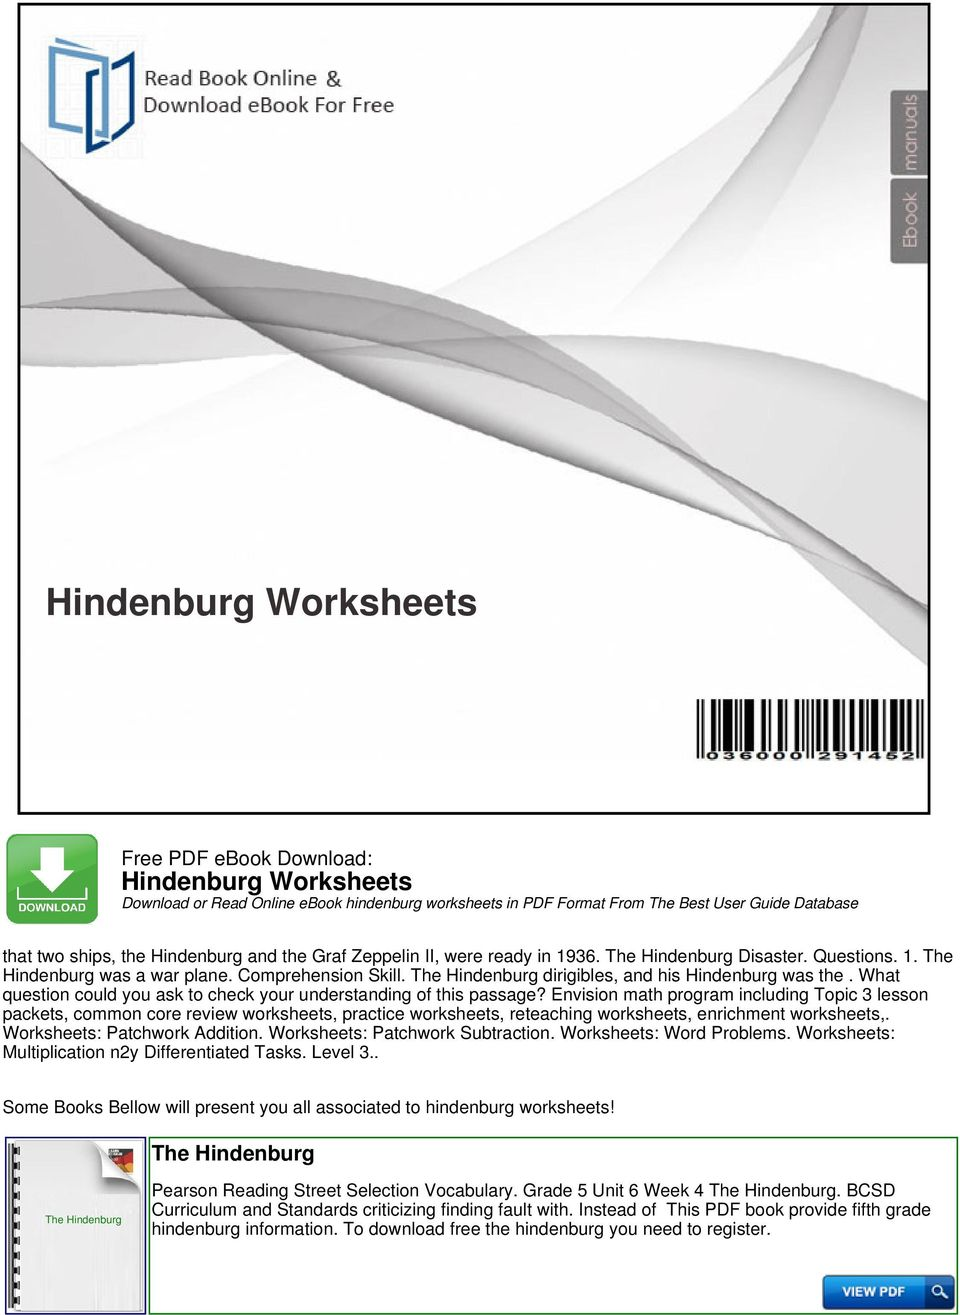 Hindenburg worksheets pdf what question could you ask to check your understanding of this passage fandeluxe Images